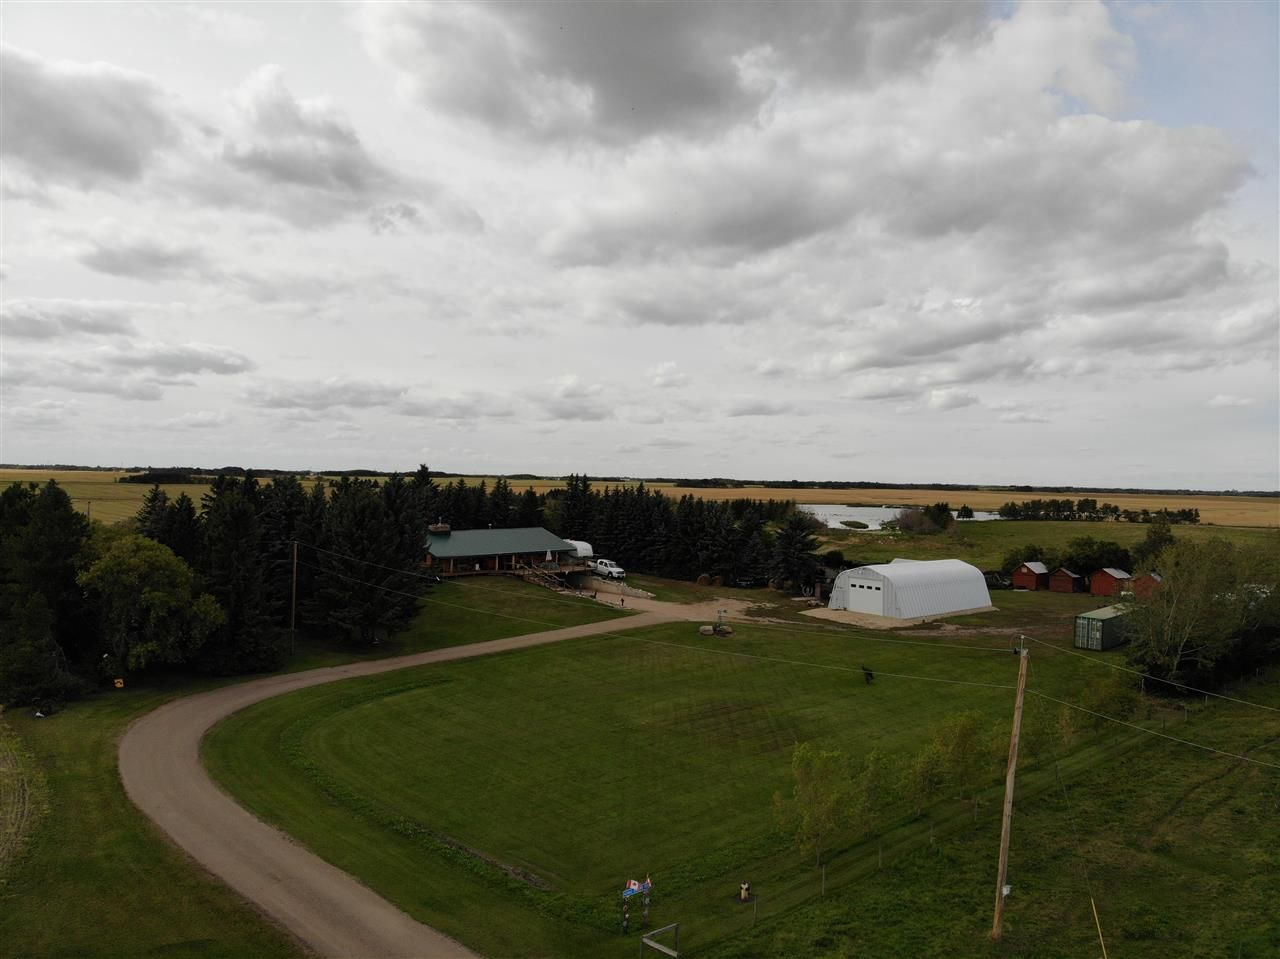 Main Photo: 43462 Range Road 150: Killam Land Commercial for sale : MLS®# E4210670